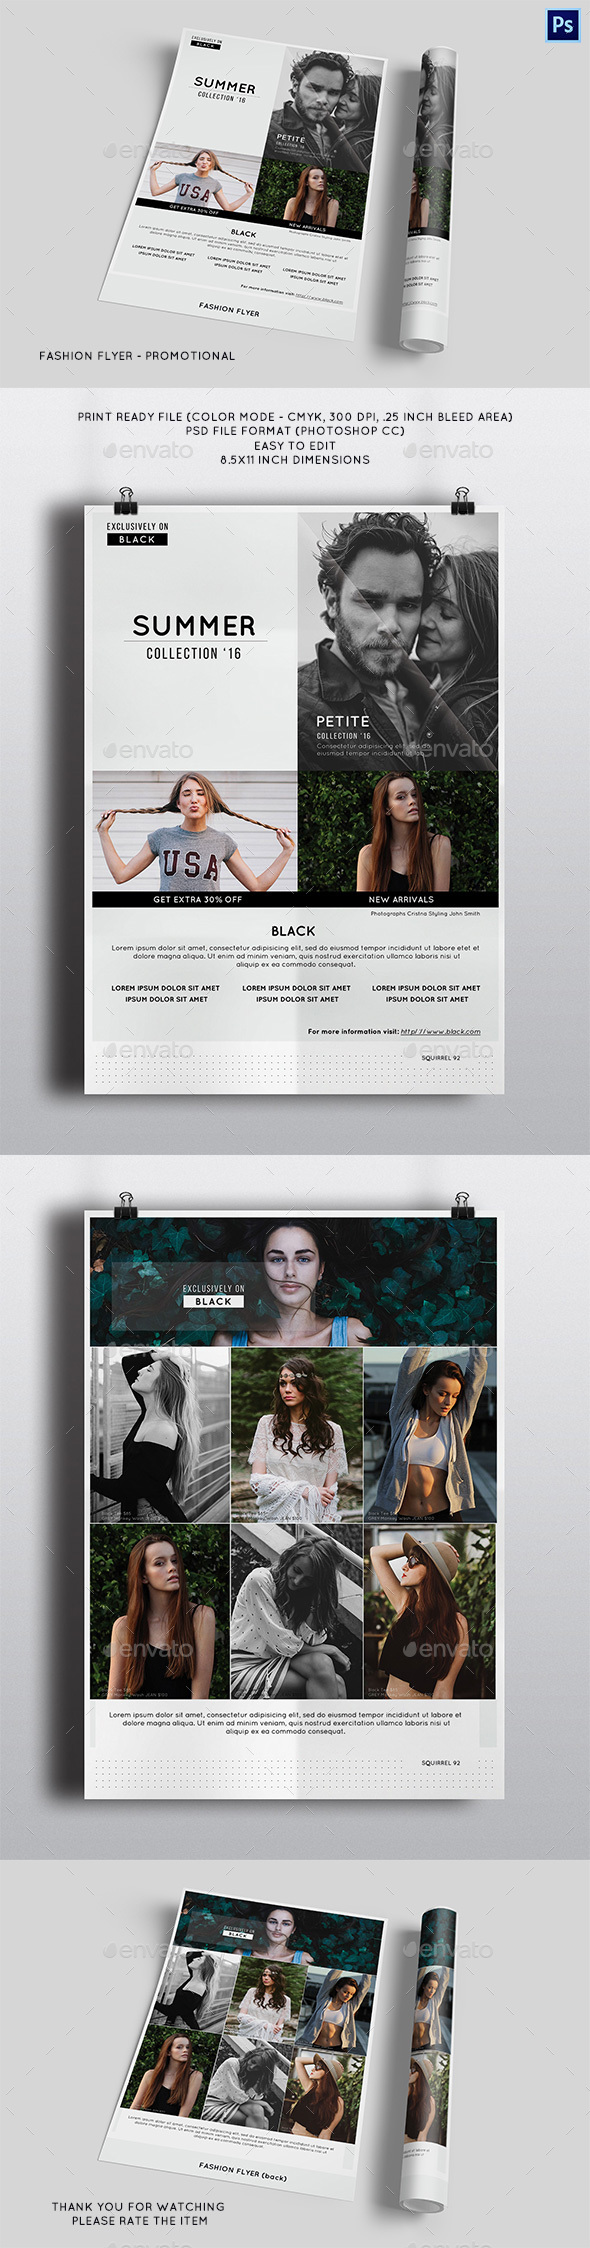 Fashion Flyer - Promotional - Corporate Flyers